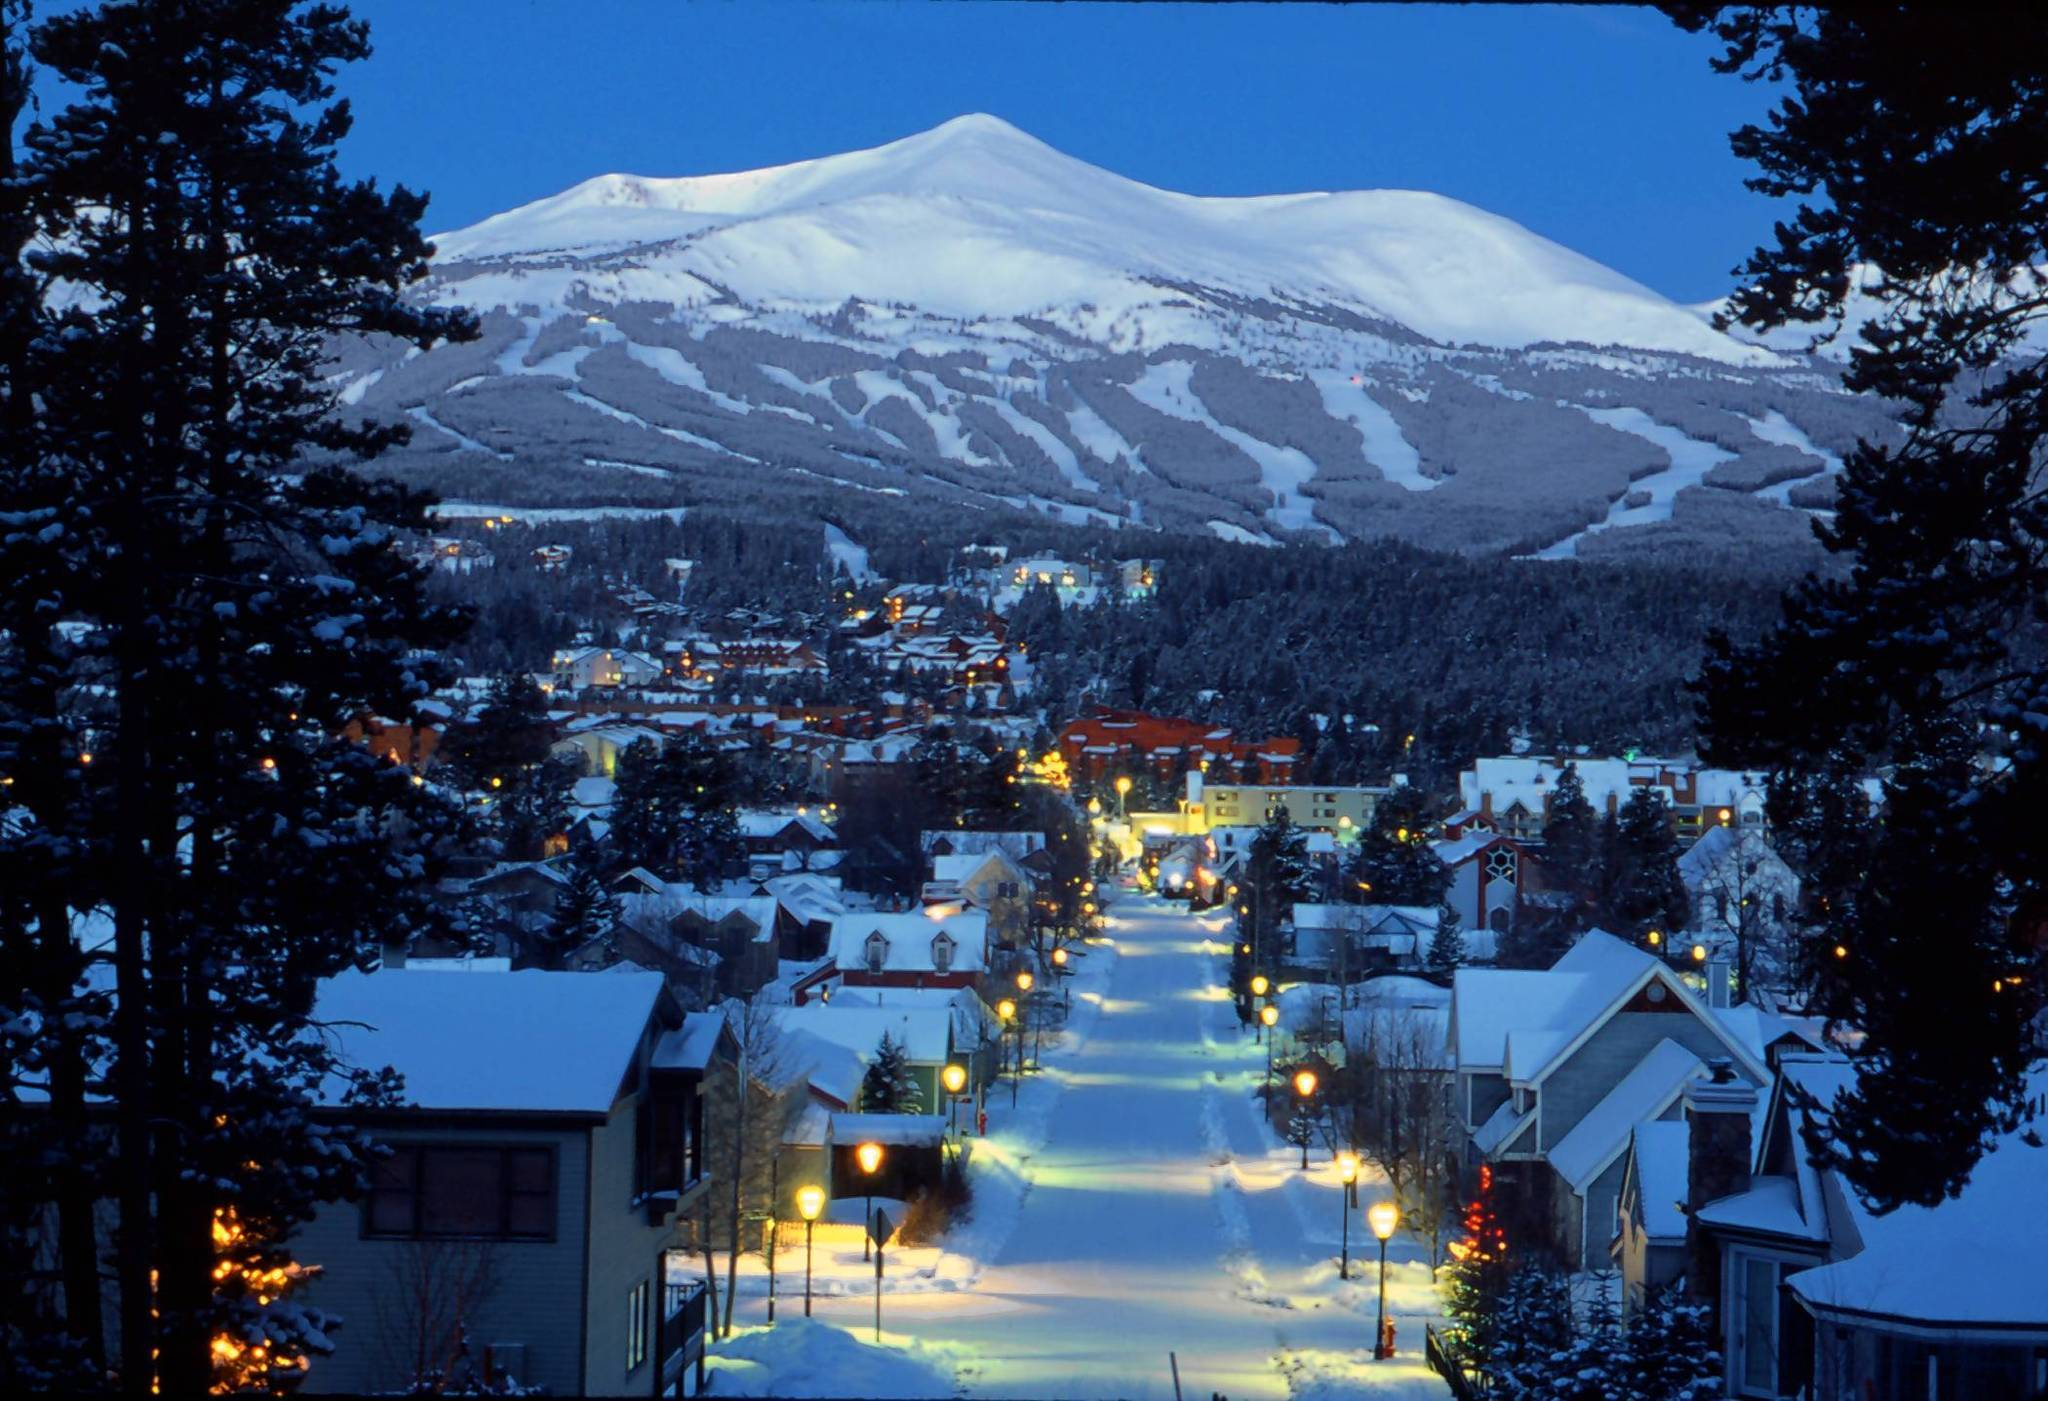 Downtown Breckenridge Colo is seen in this Dec 12 2002 CARL 2048x1401